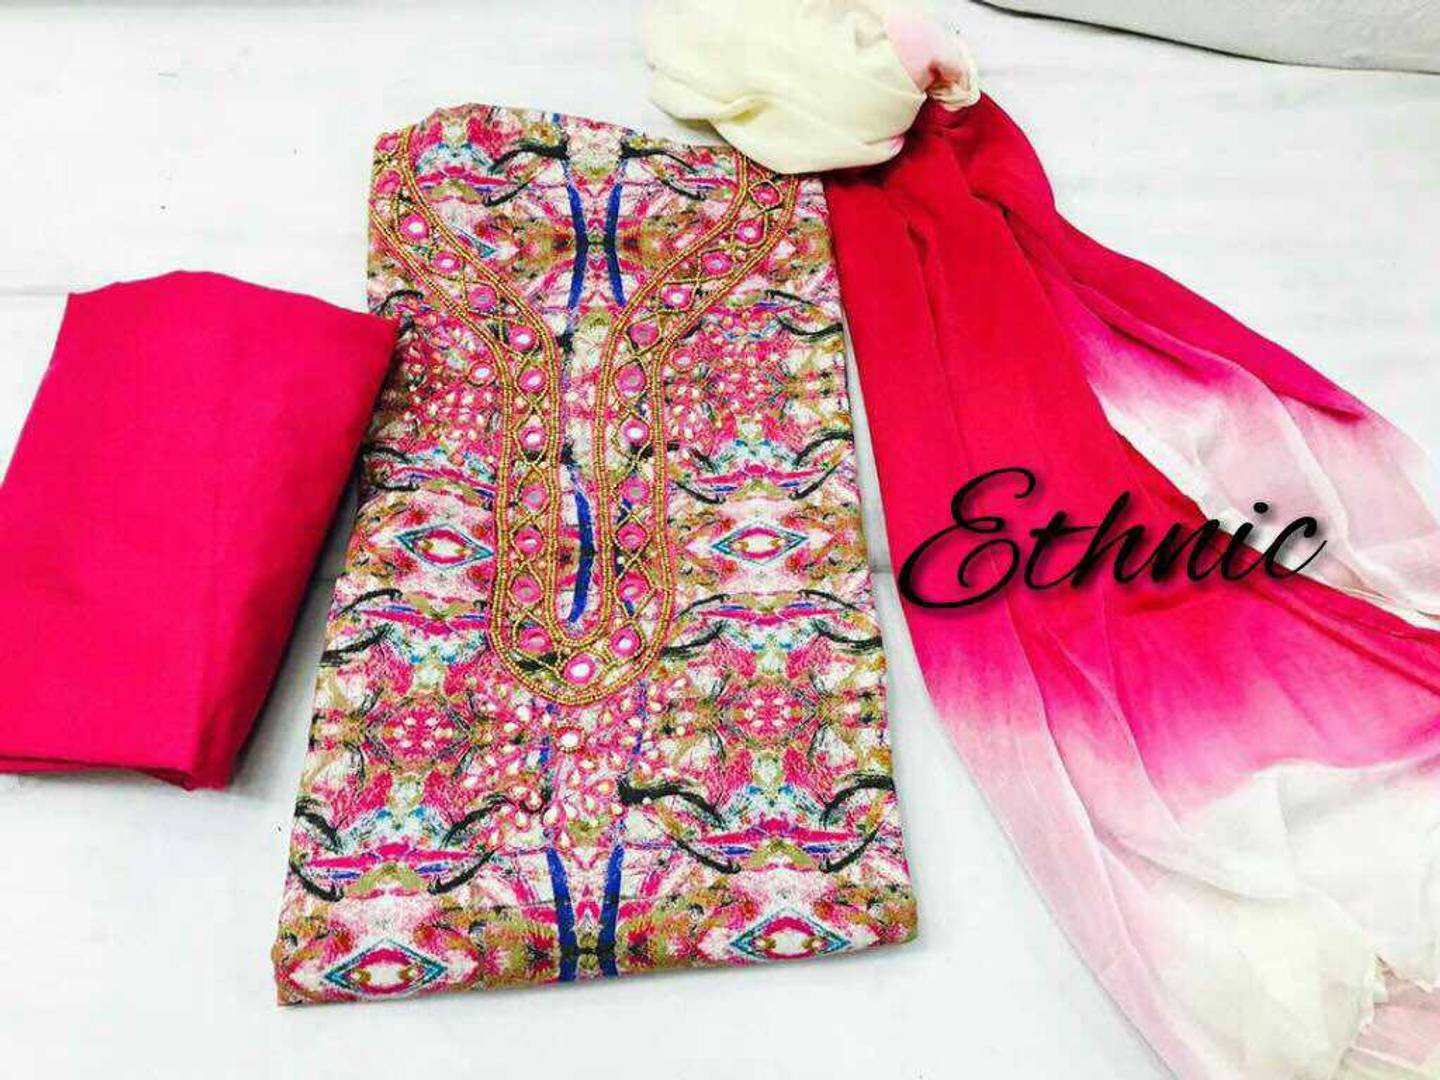 Chudi Material Handwork On Soft Cotton Top Mirror Revathi Chennai For Sale Looking For Resellers